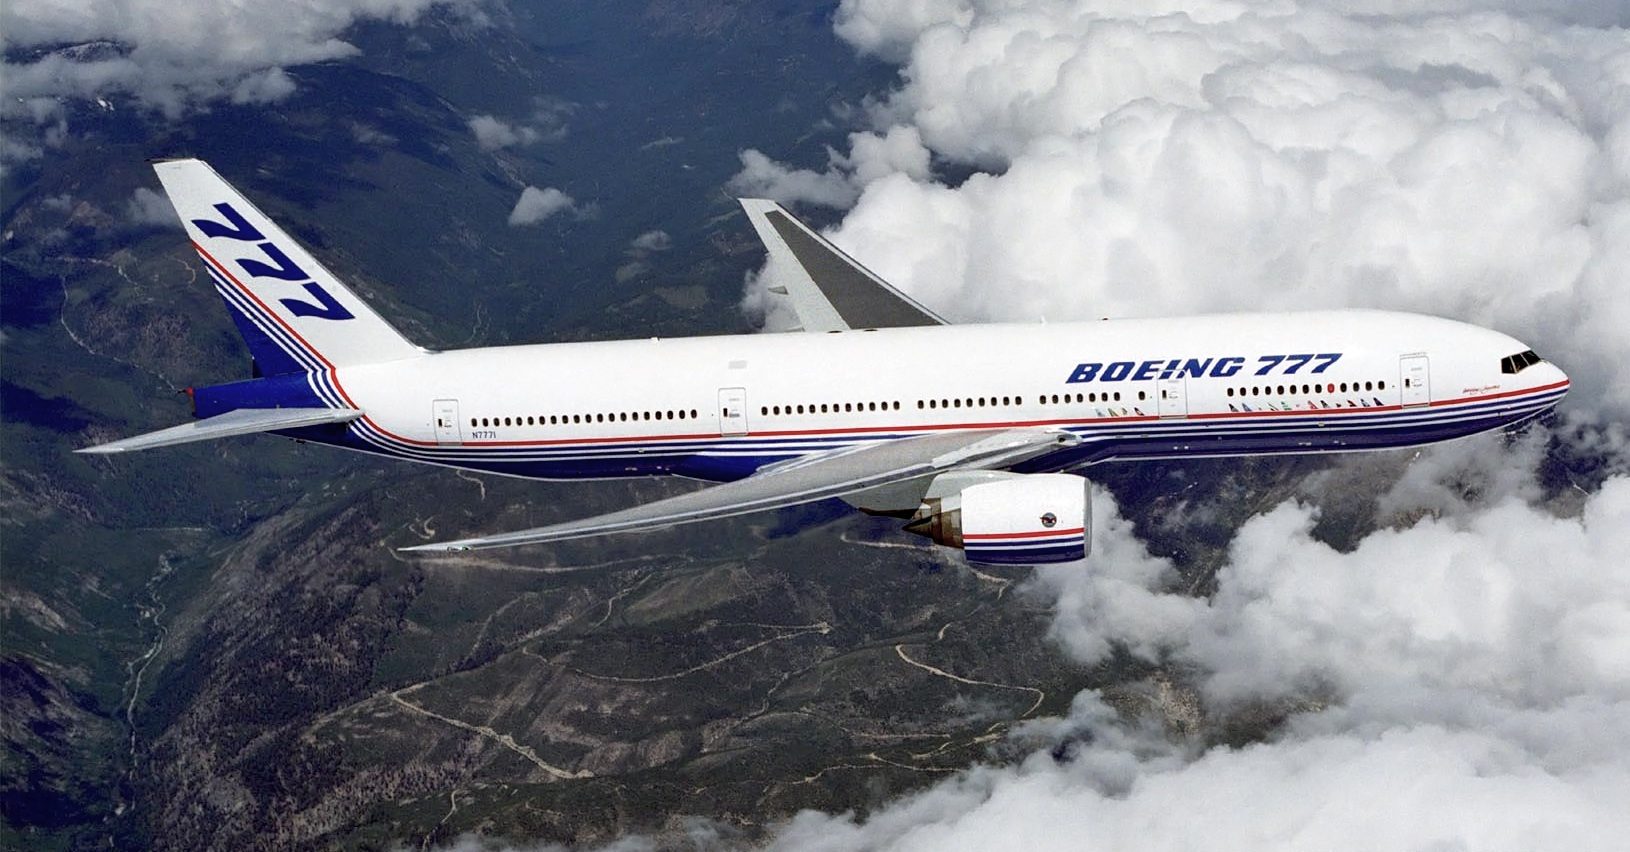 Boeing 777 - Wikiwand